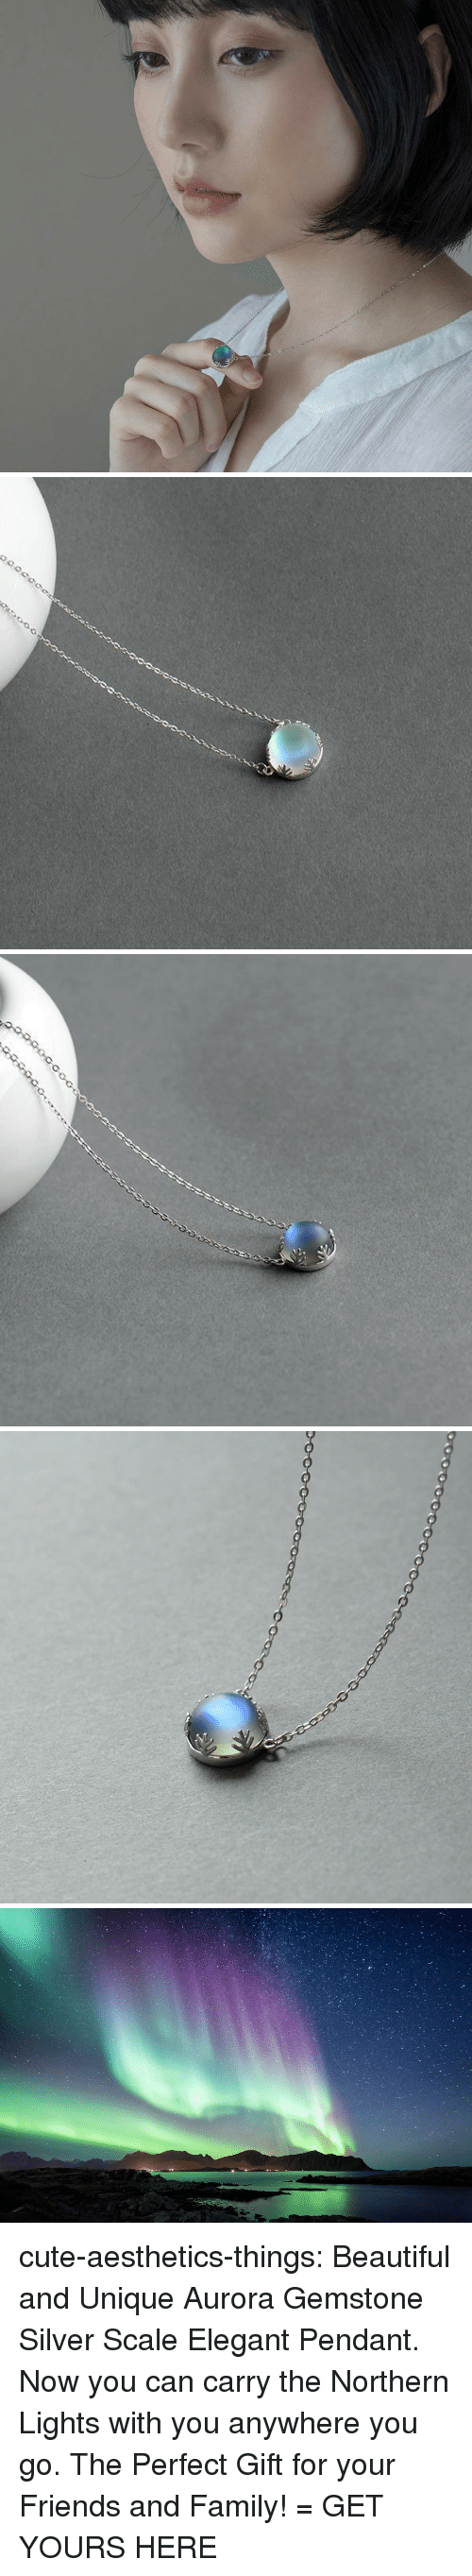 Gemstone: cute-aesthetics-things: Beautiful and Unique Aurora Gemstone Silver Scale Elegant Pendant. Now you can carry the Northern Lights with you anywhere you go. The Perfect Gift for your Friends and Family! = GET YOURS HERE